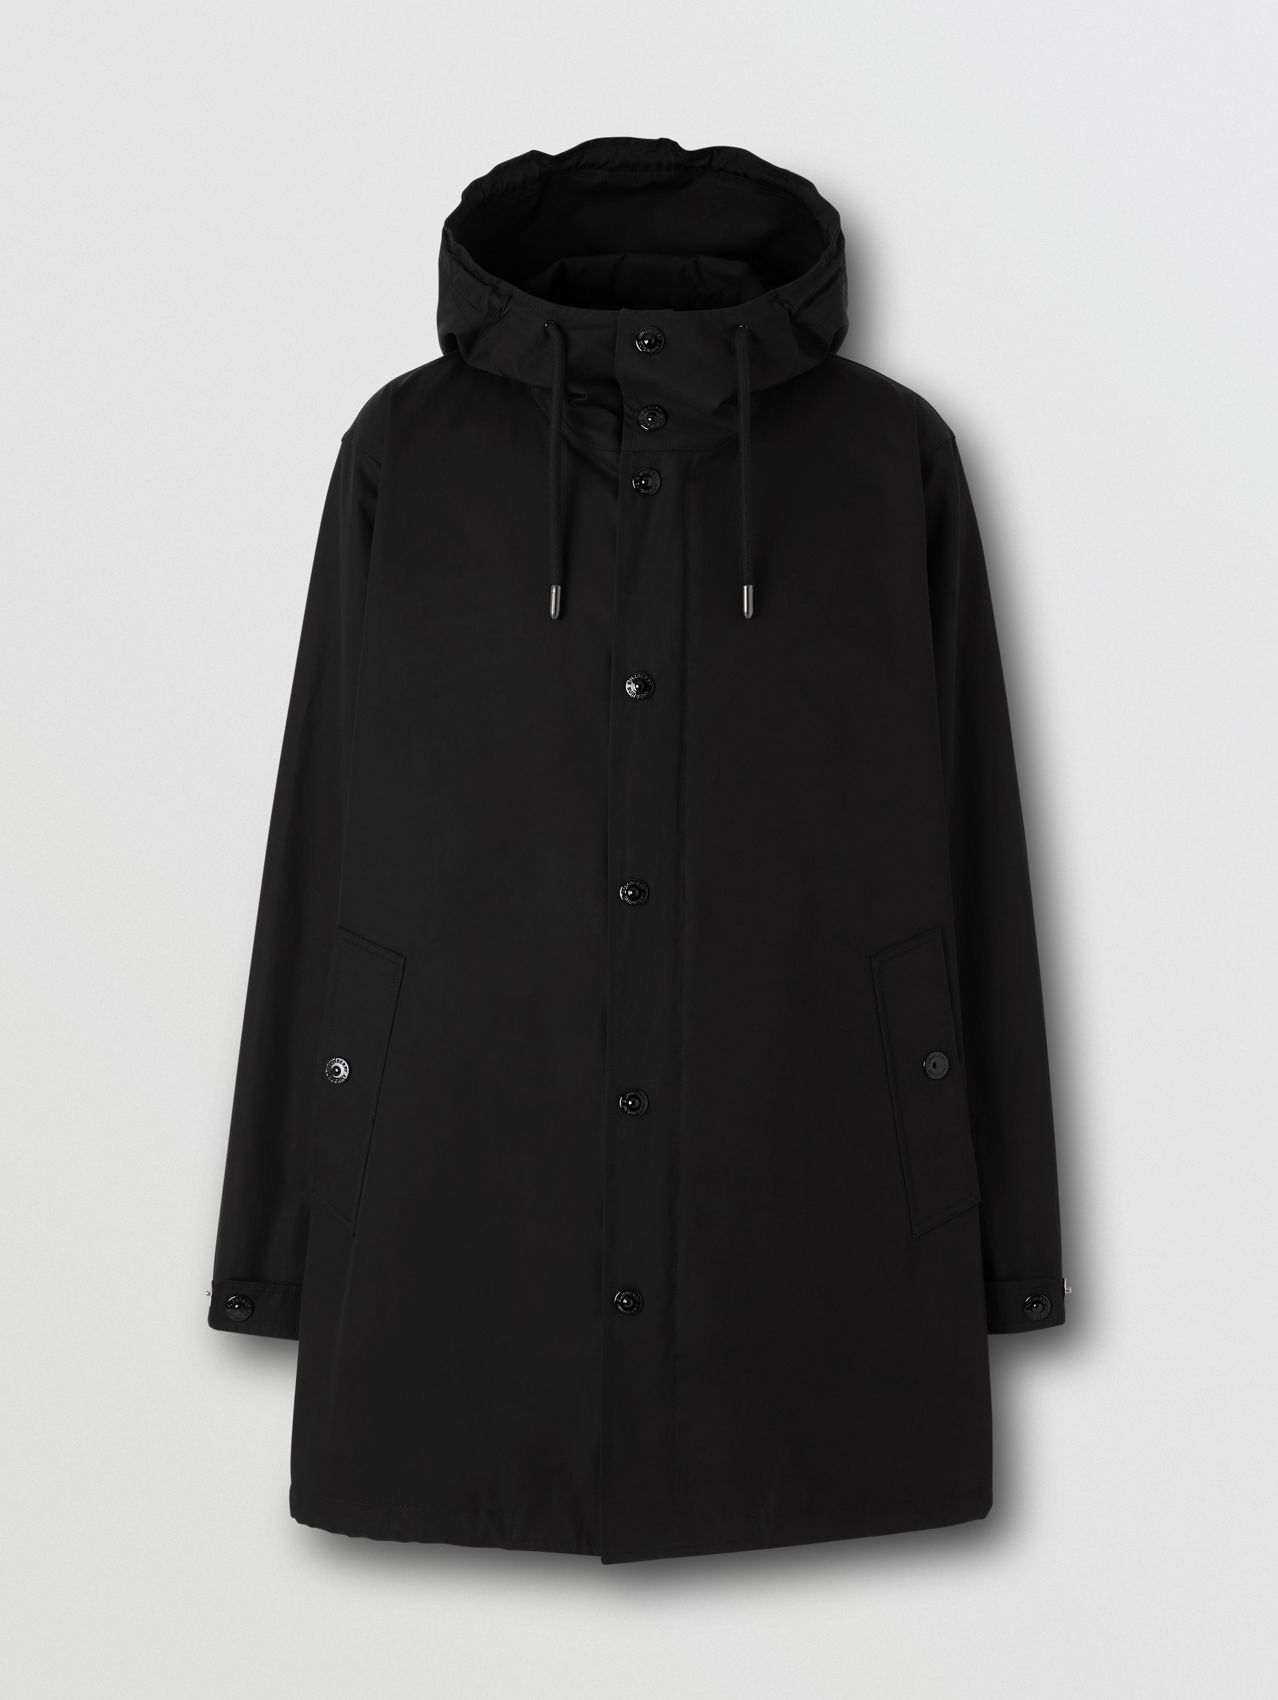 Logo Appliqué Cotton Hooded Coat in Black